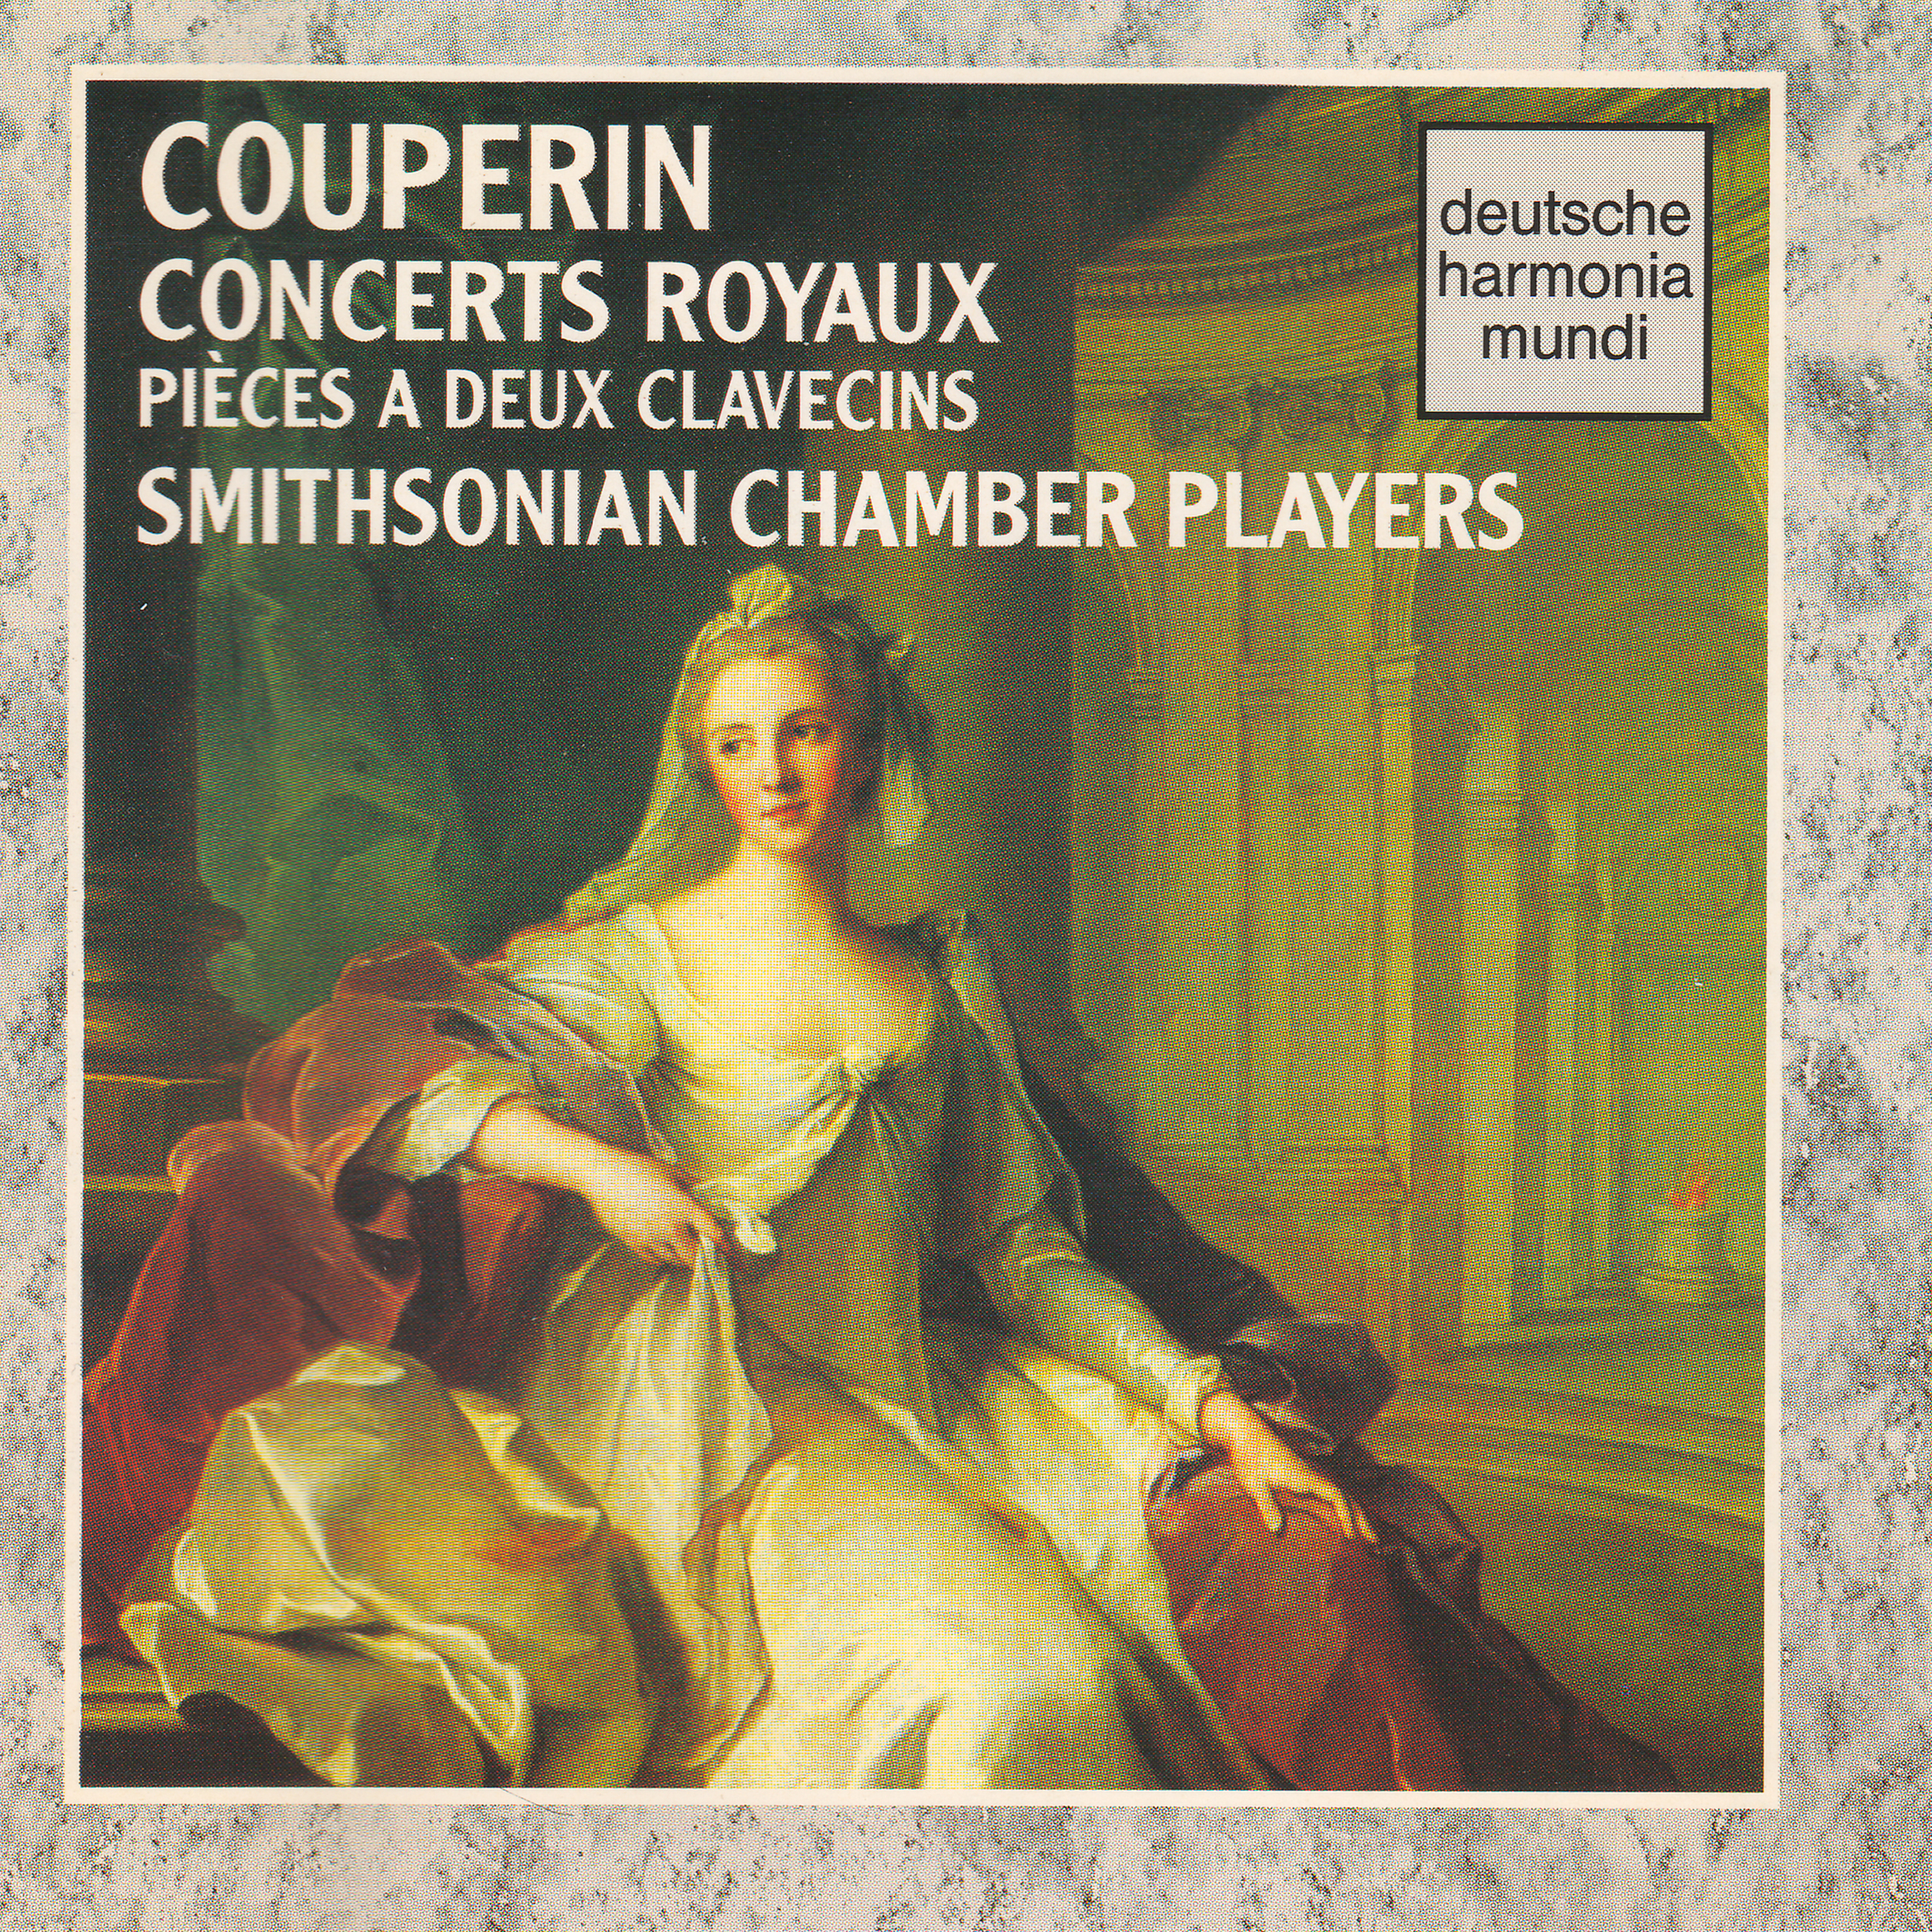 couperin concerts royaux smithso.jpg